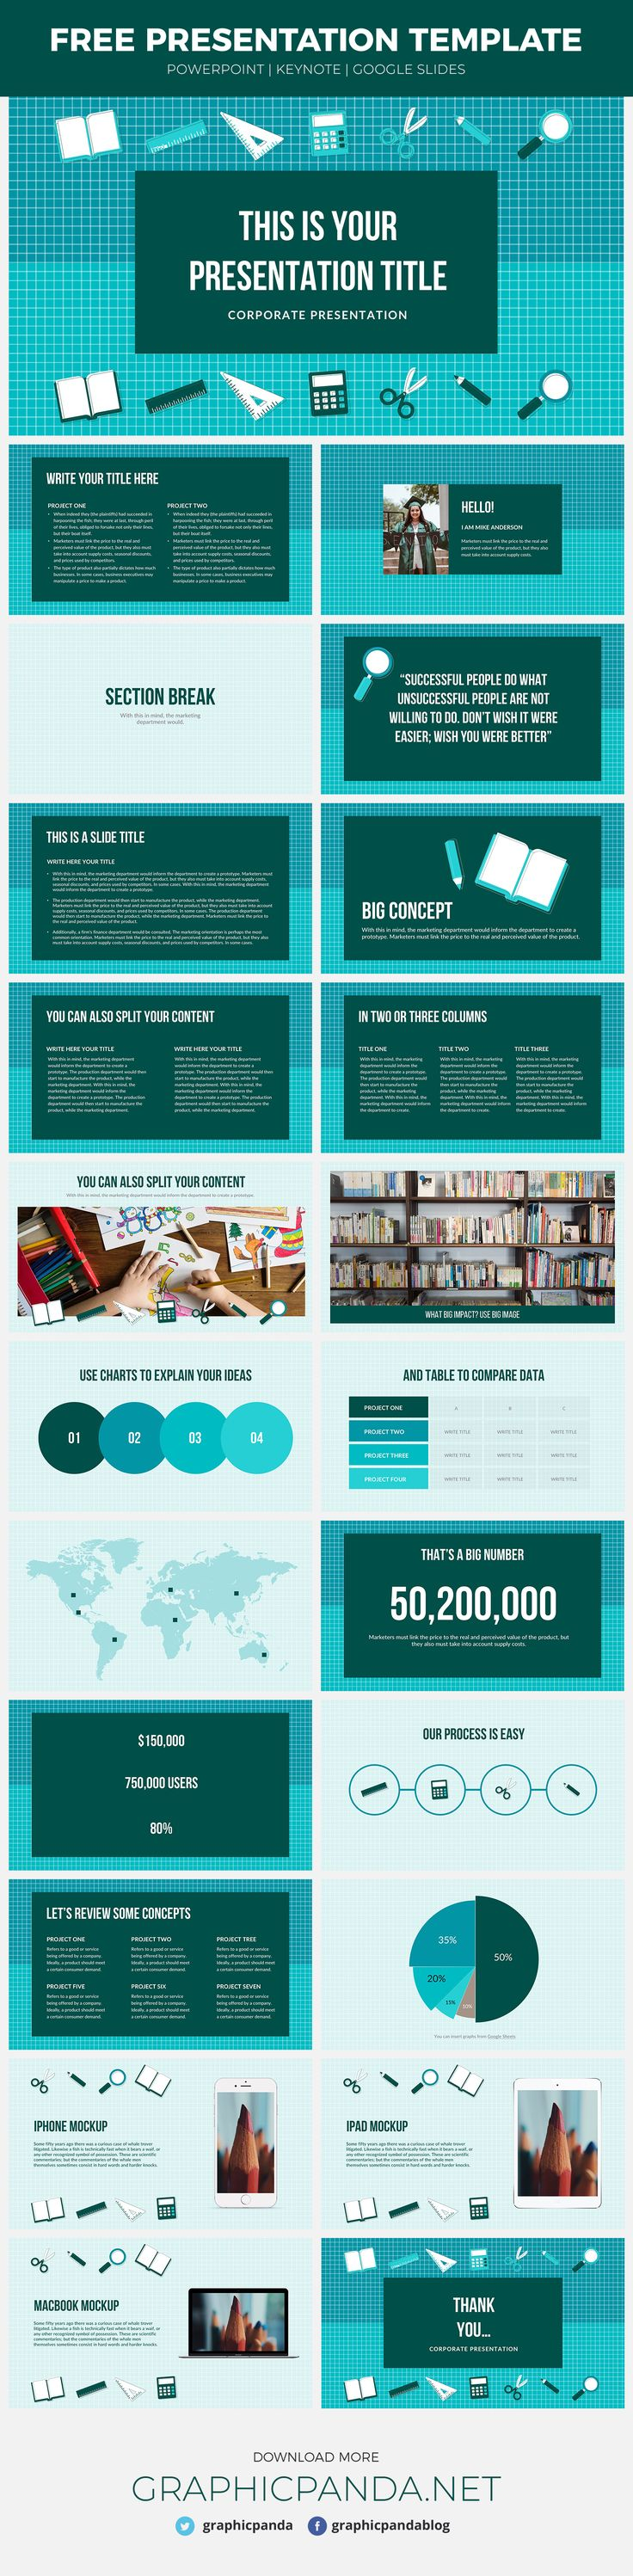 Loaded with color and infographics the Education